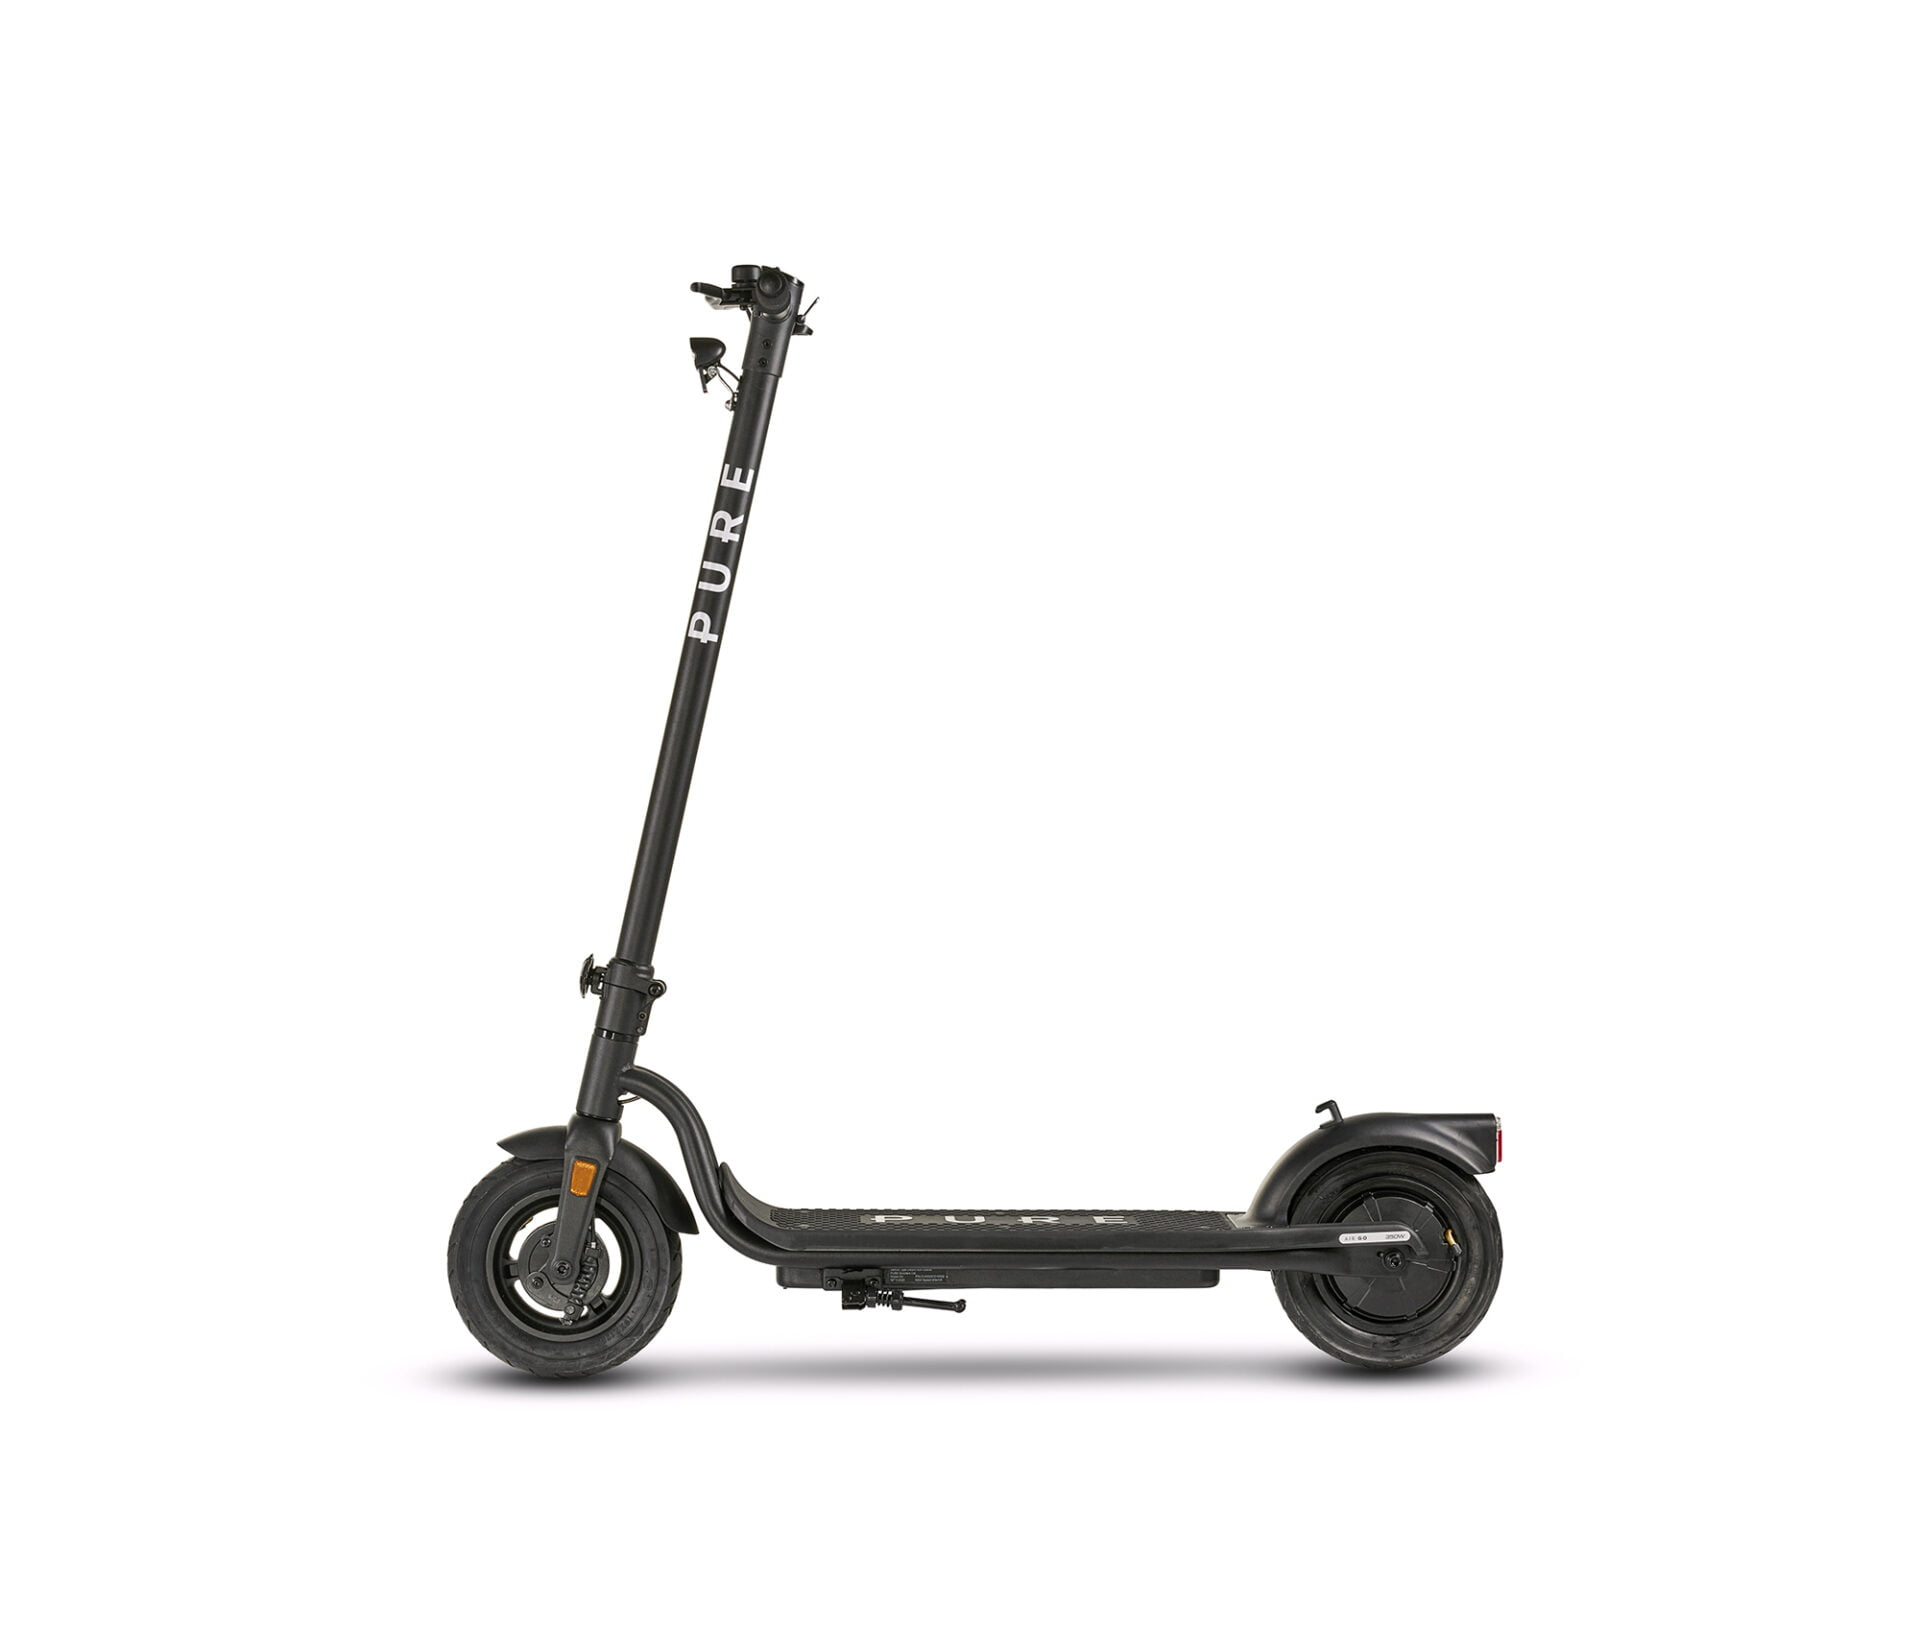 Birmingham Product Photgraphy Pure electric Scooter